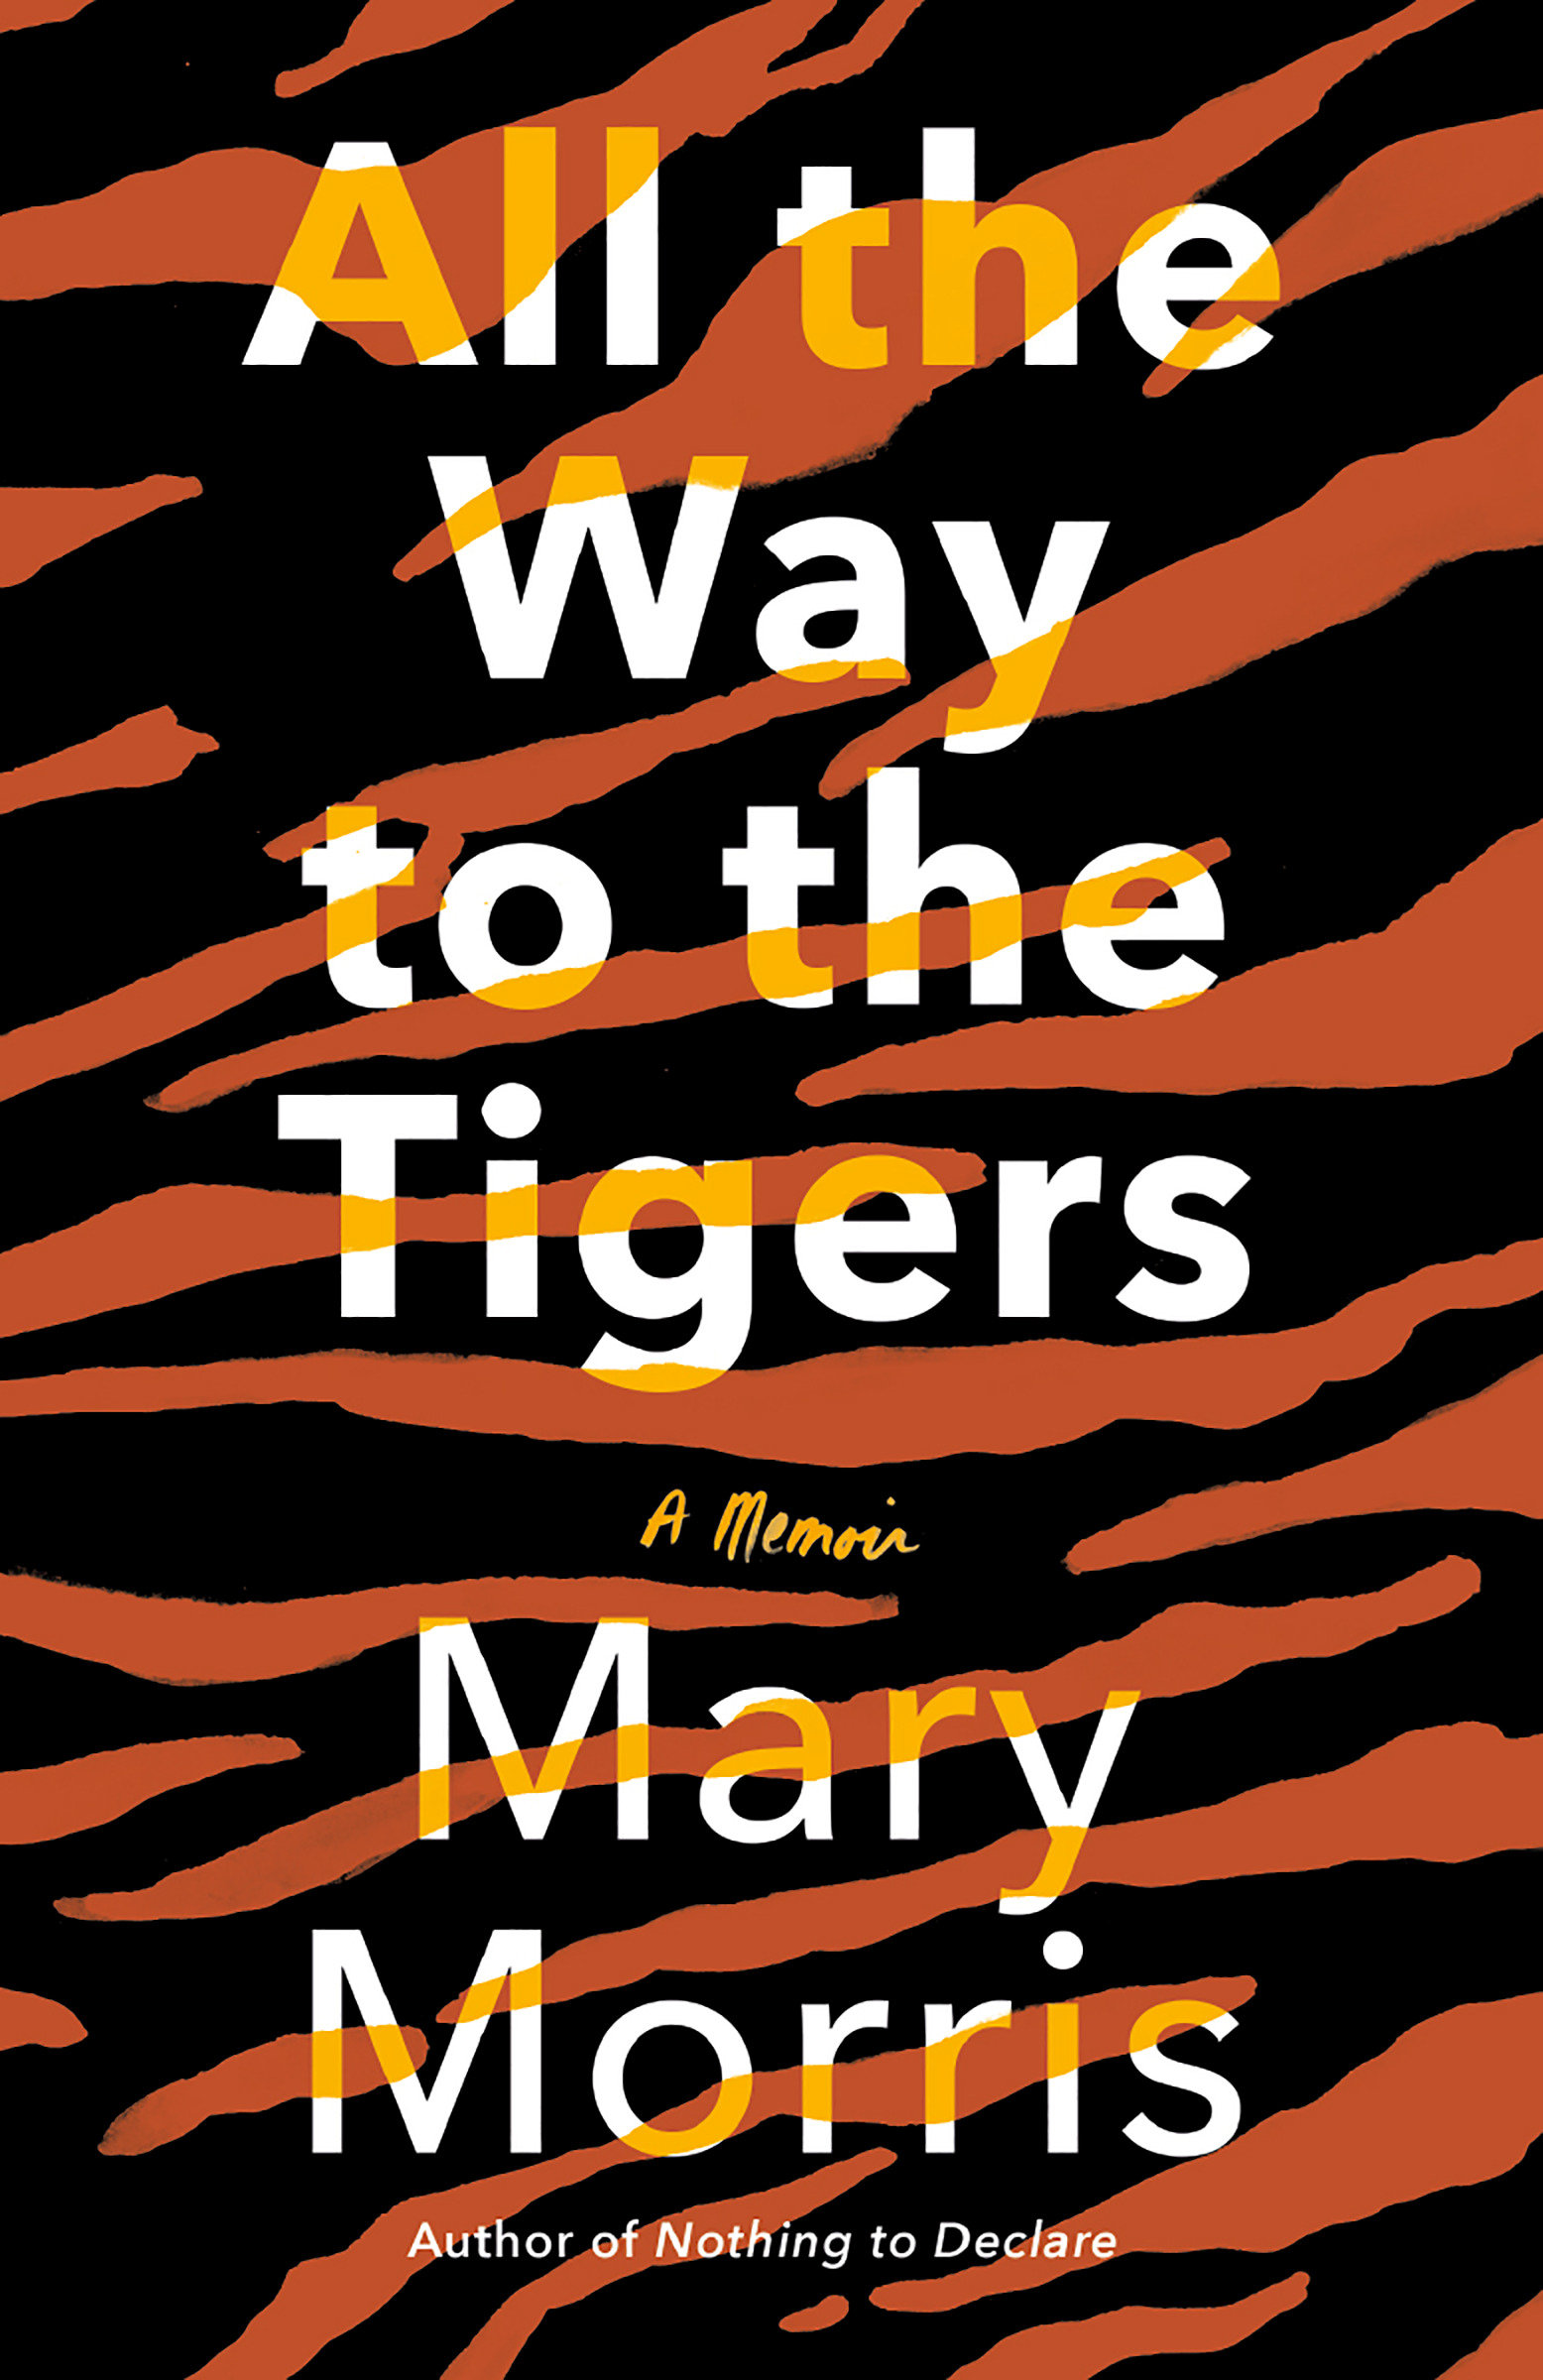 All the Way to the Tigers A Memoir